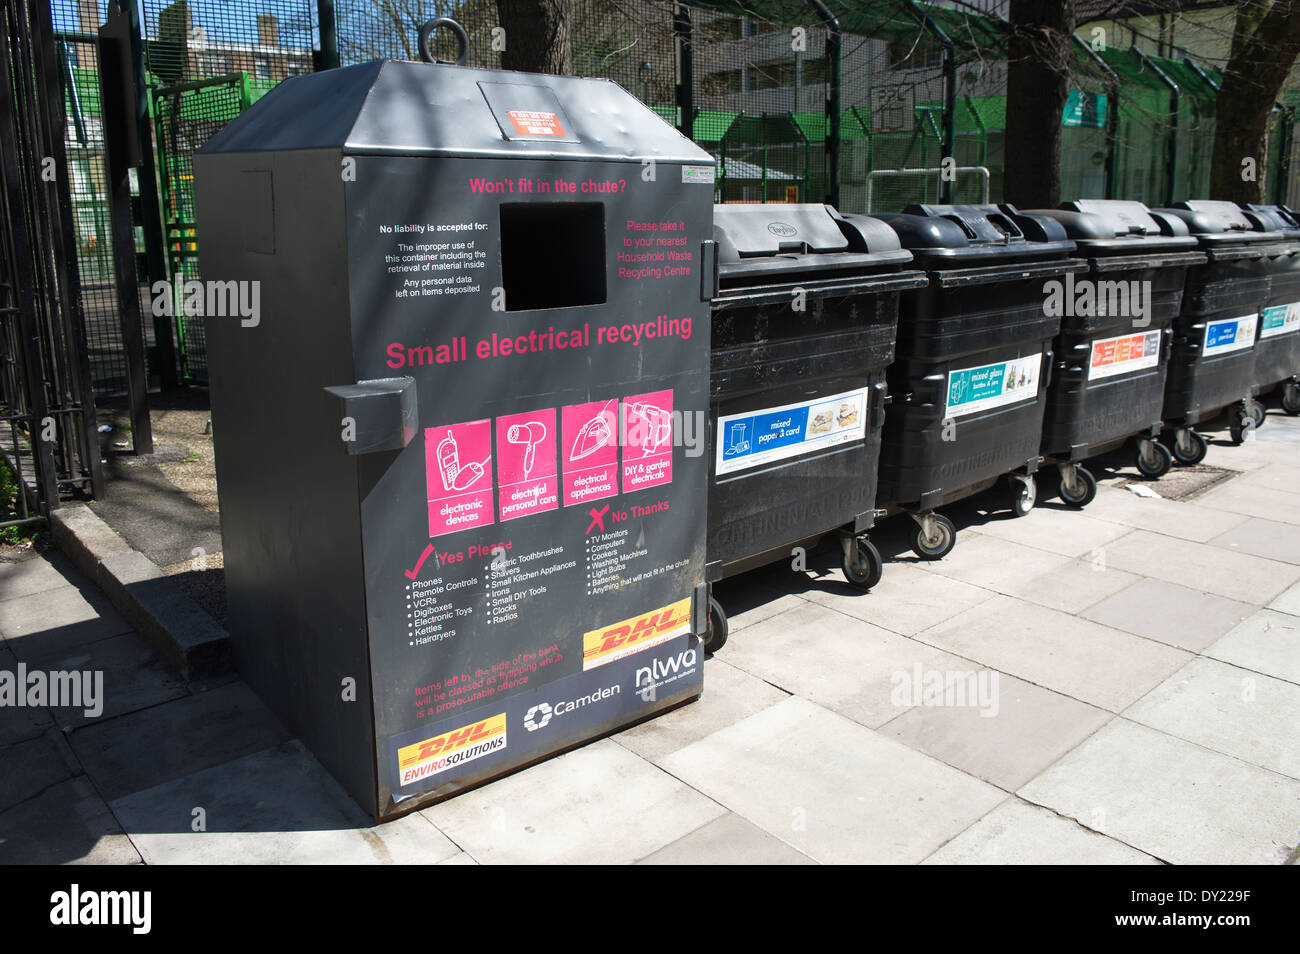 Recycling facility for small electrical appliances WEEE in Camden, London, England, UK. Stock Photo